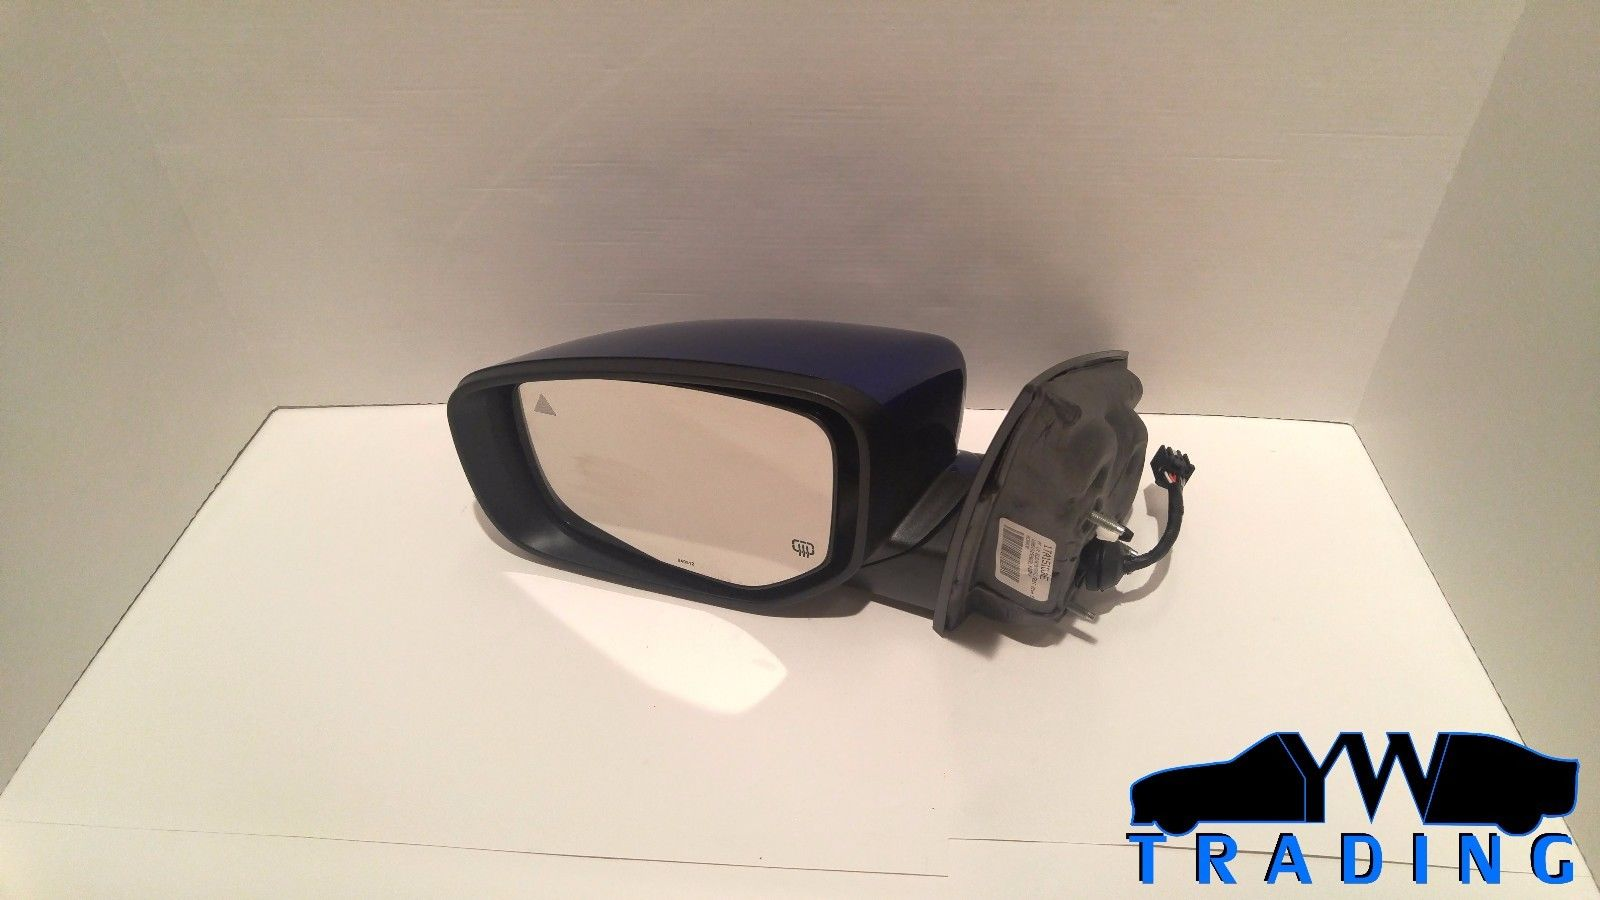 '13 - '15 DODGE DART OEM LEFT SIDE MIRROR POWER/FOLD ABLE/BLIND SPOT 1TA151CLAE